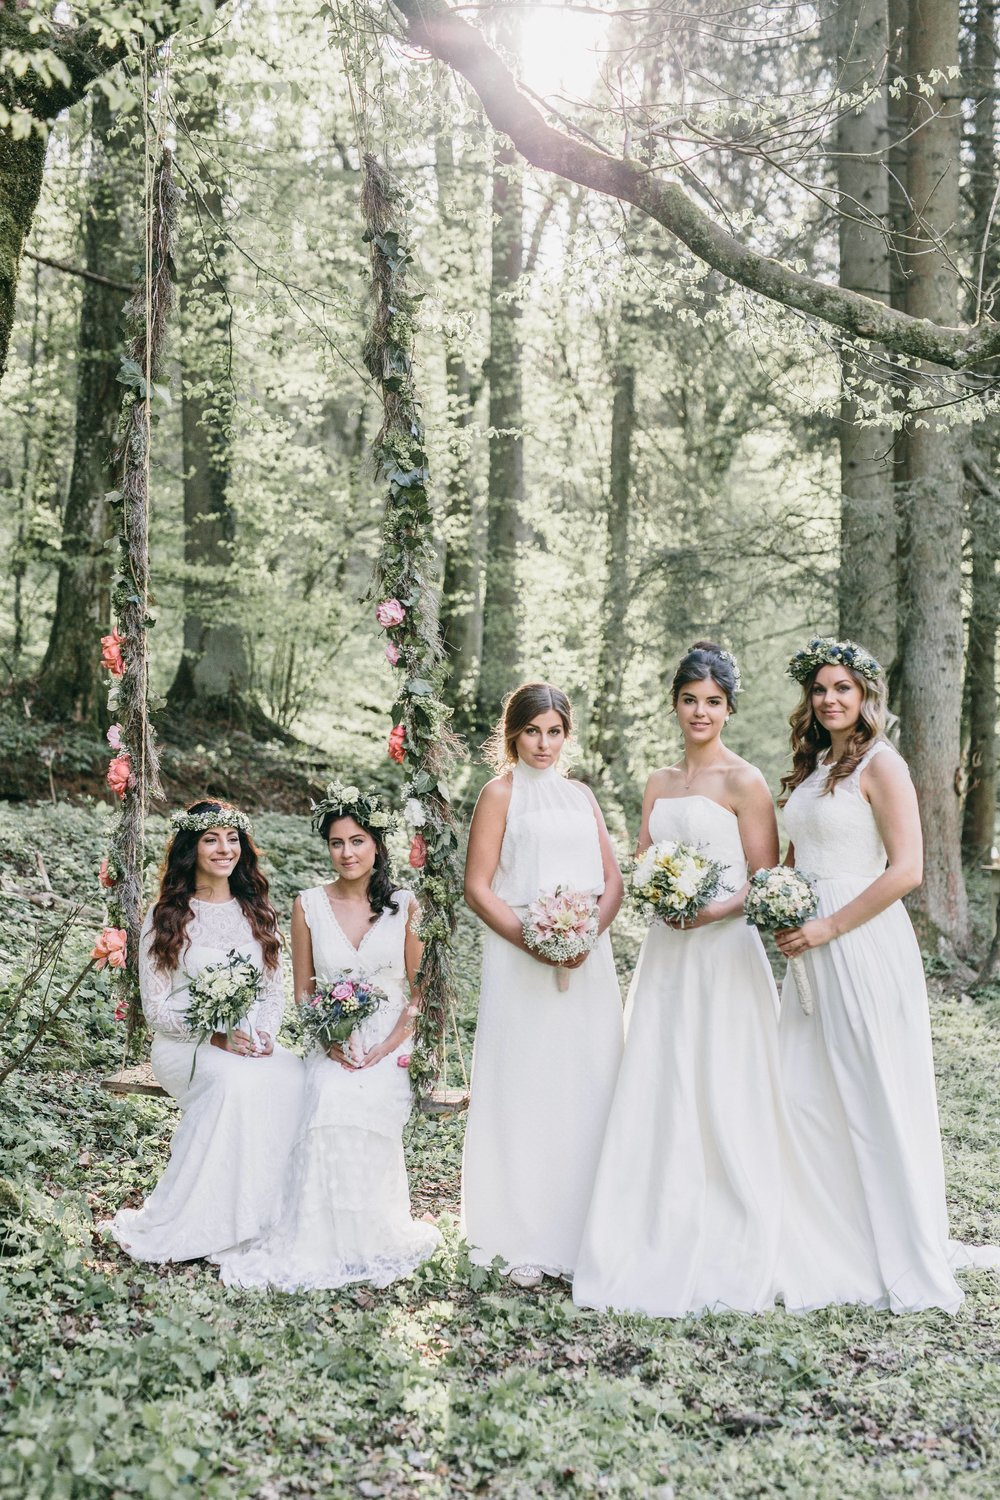 Let's meet in secret garden – Bohemian Wedding